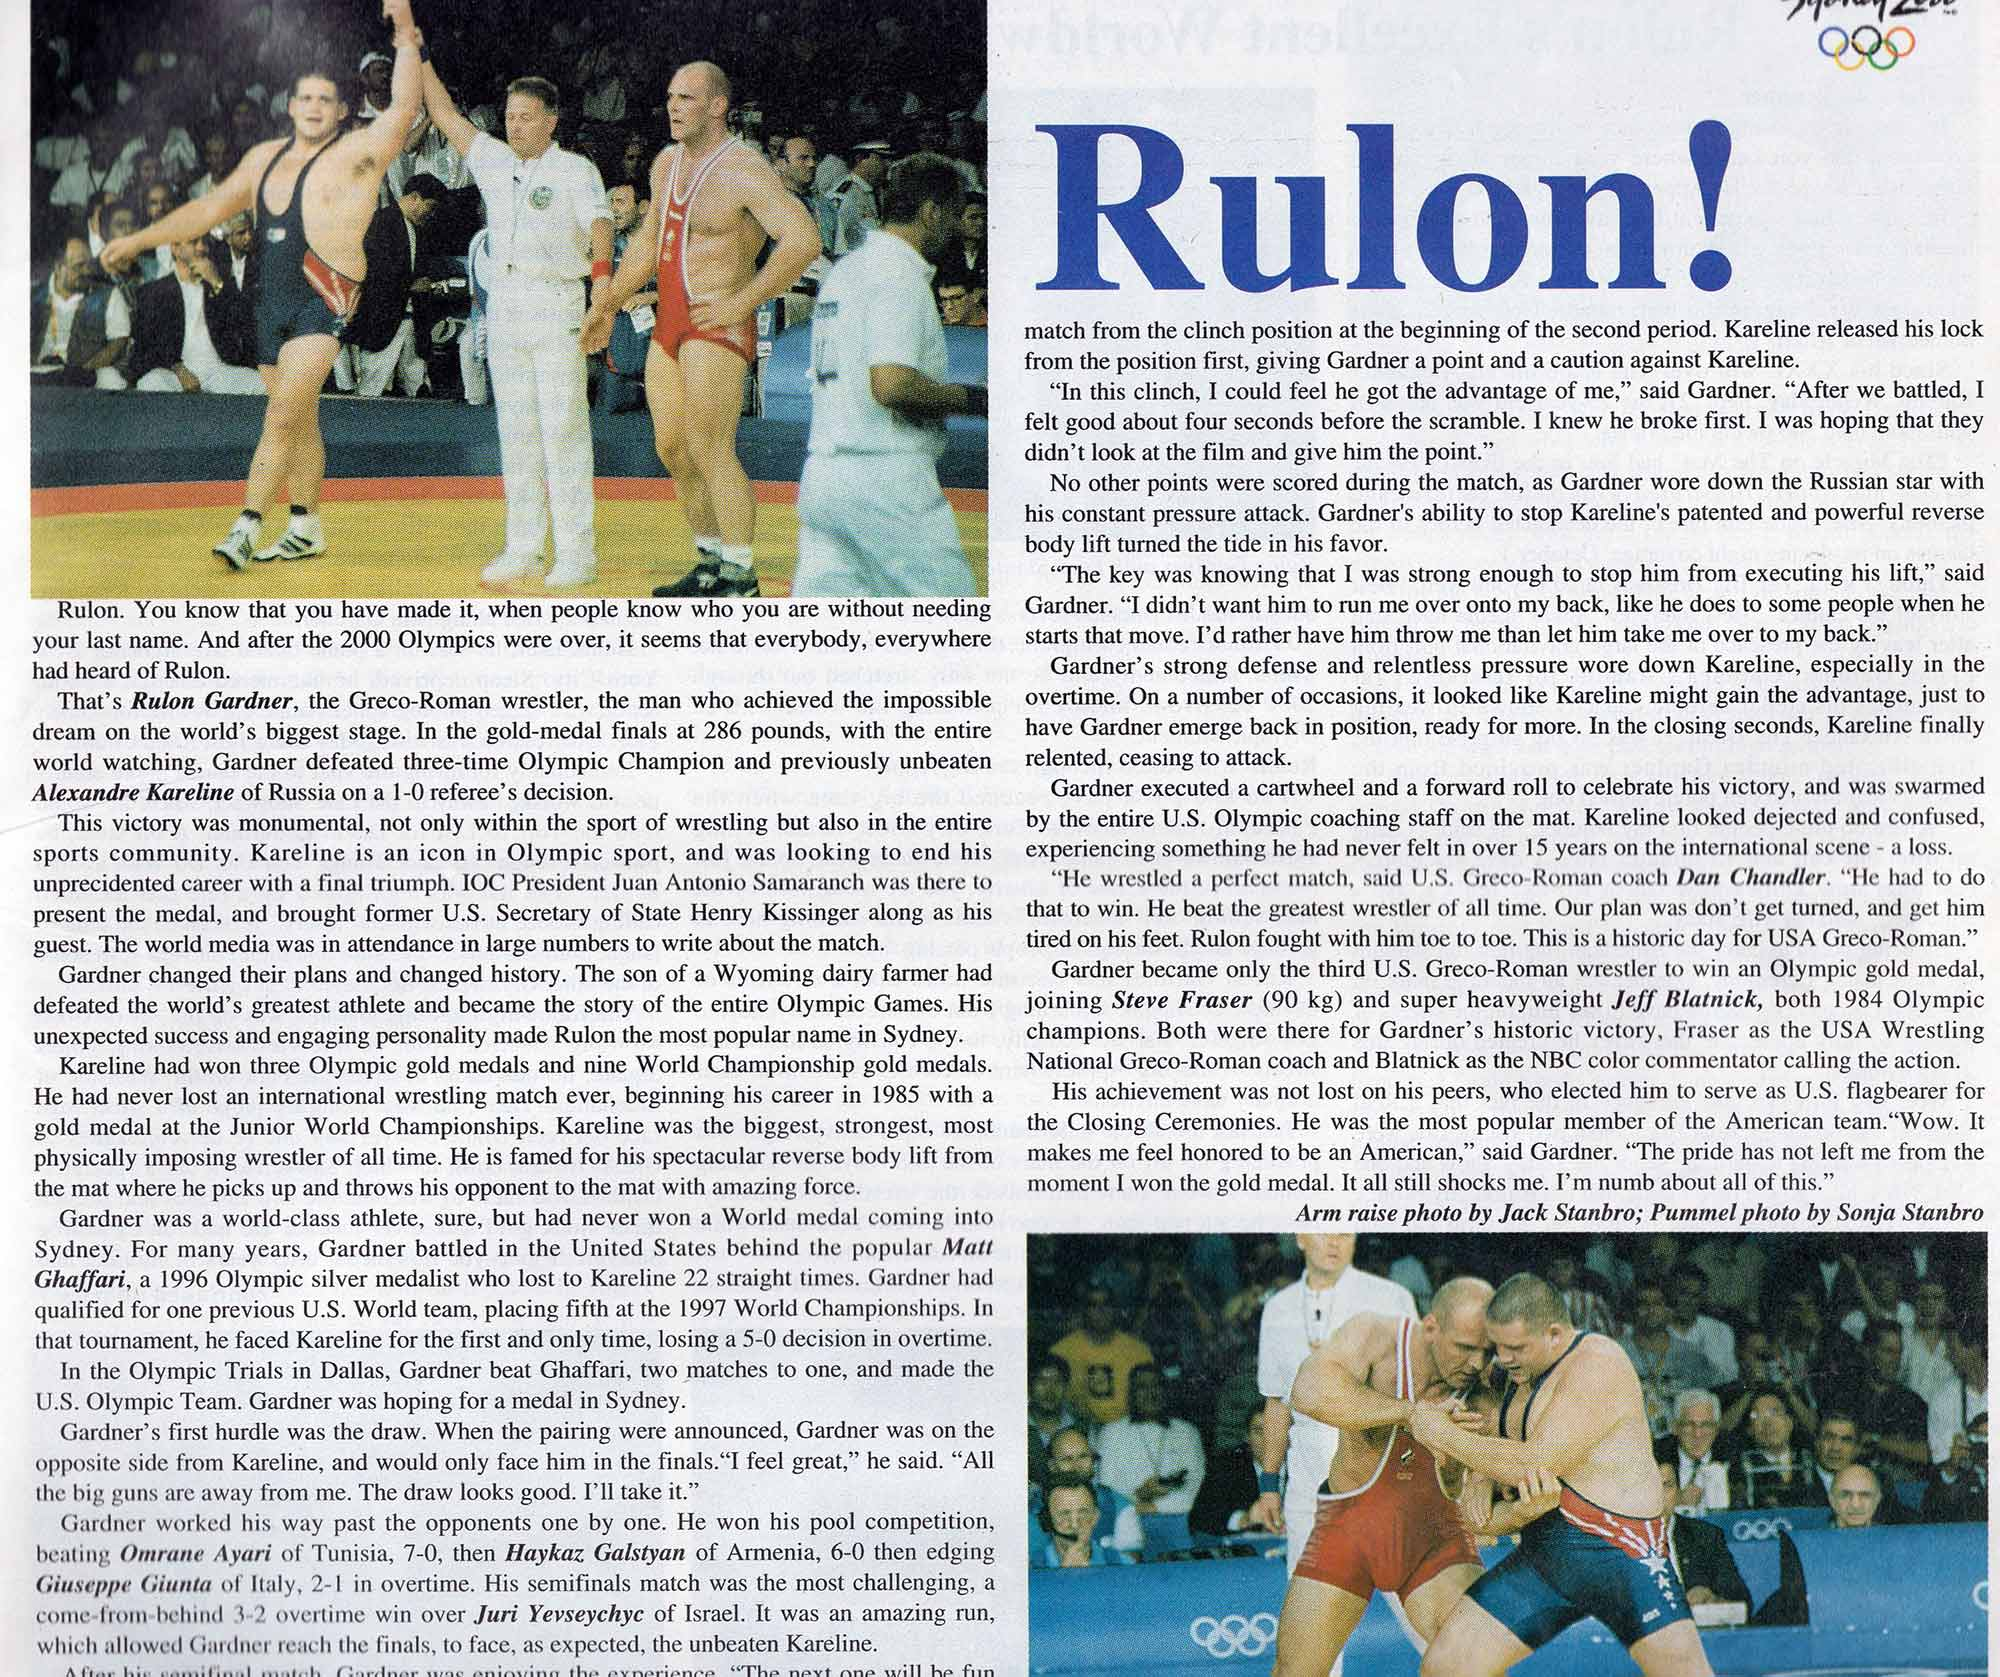 News article on Rulon's wrestling victory